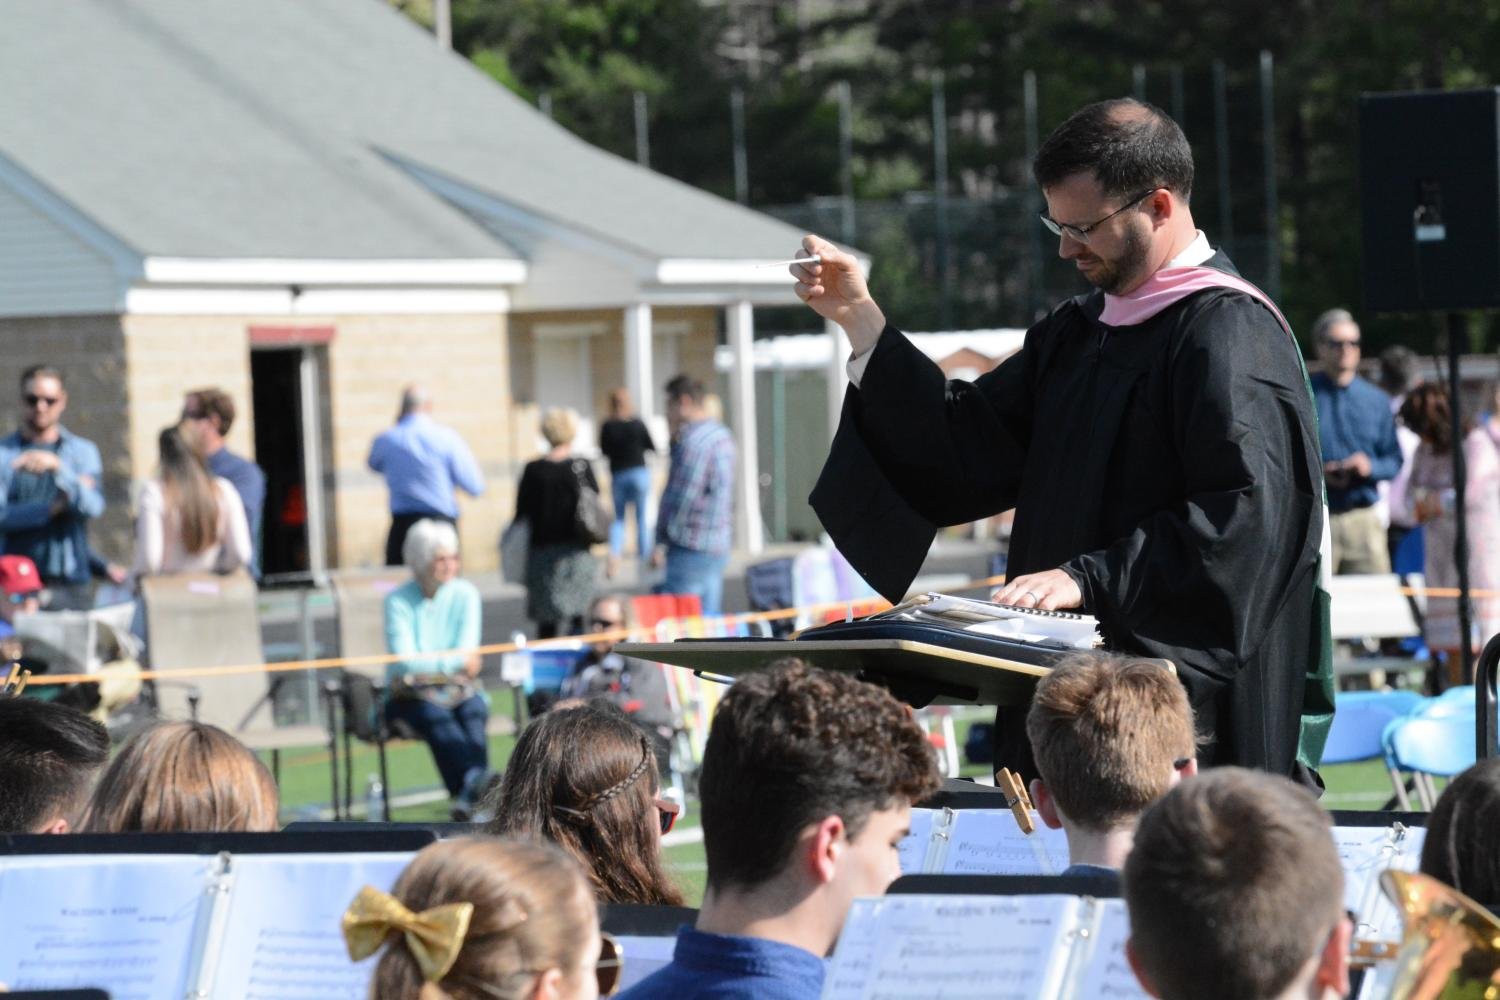 Music+teacher+George+Arsenault+composes+%22Pomp+of+Circumstance%22+while+the+WA+band+performs.